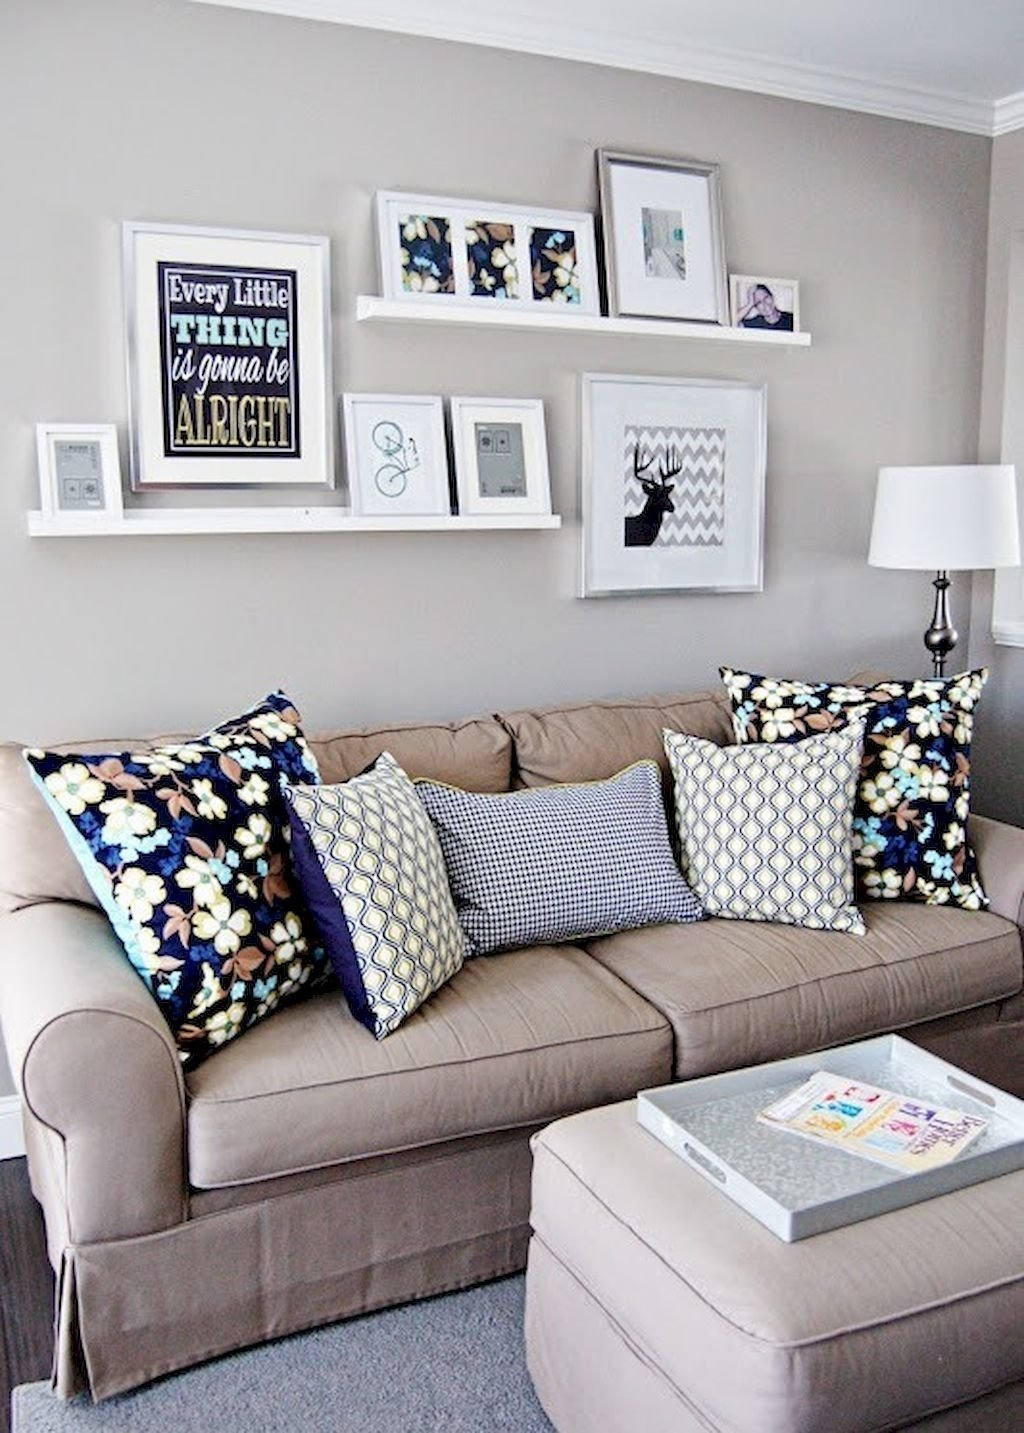 10 Pretty Cheap Decorating Ideas For Apartments 40 beautiful and cute apartment decorating ideas on a budget 3 2021